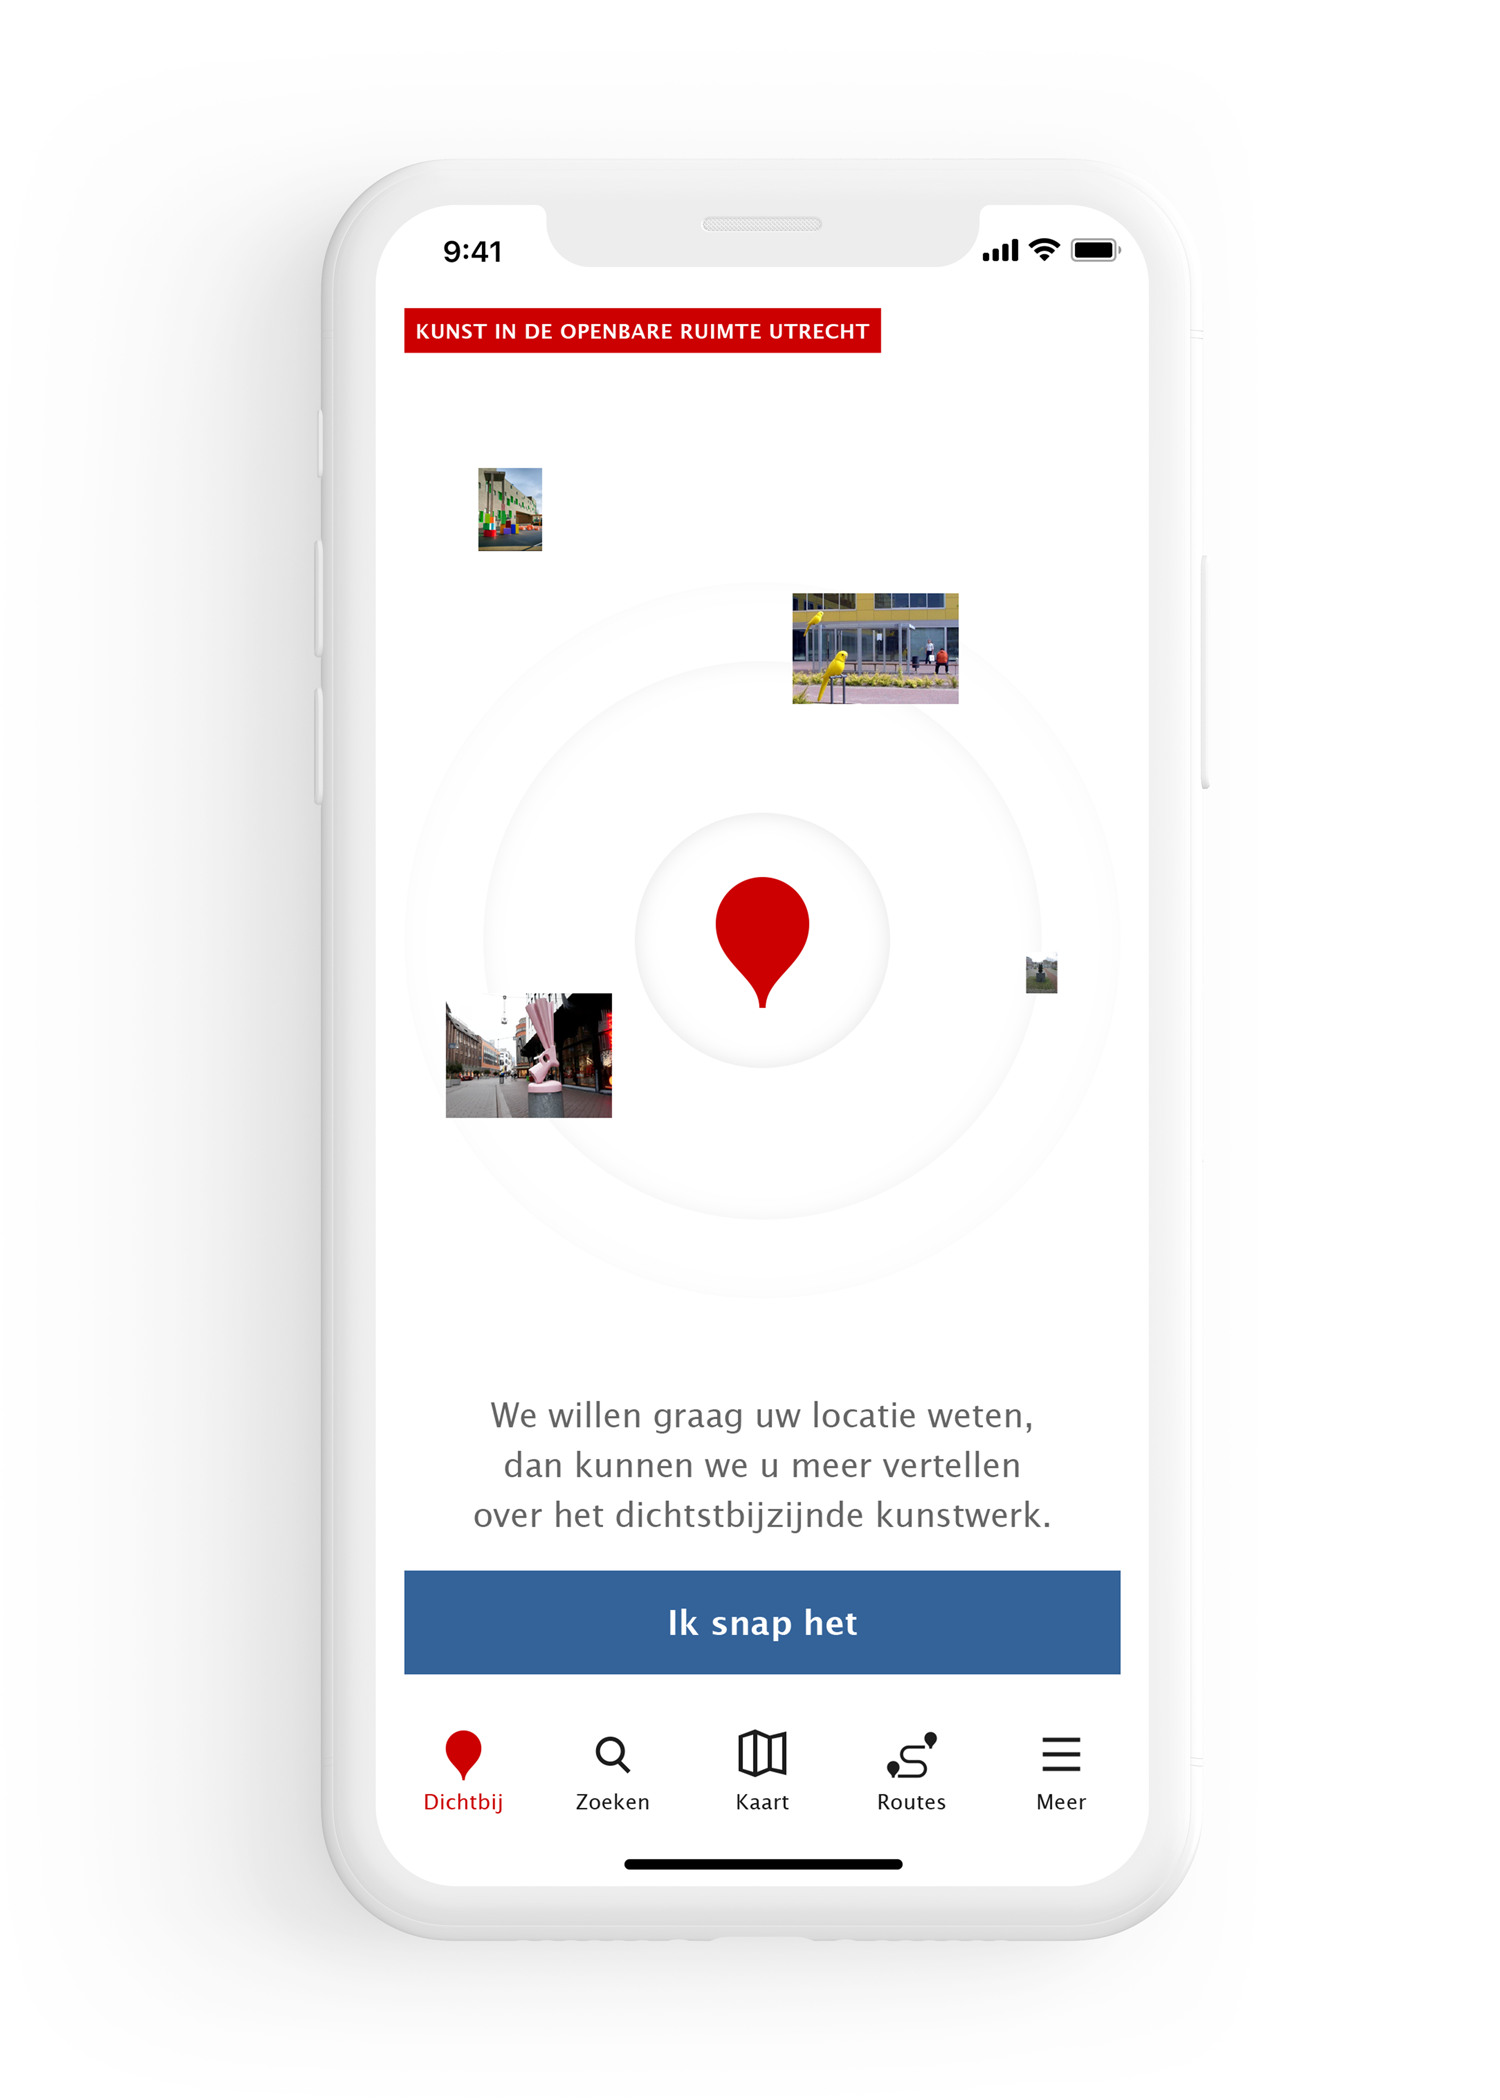 kunstopenbaar-app-location-notify